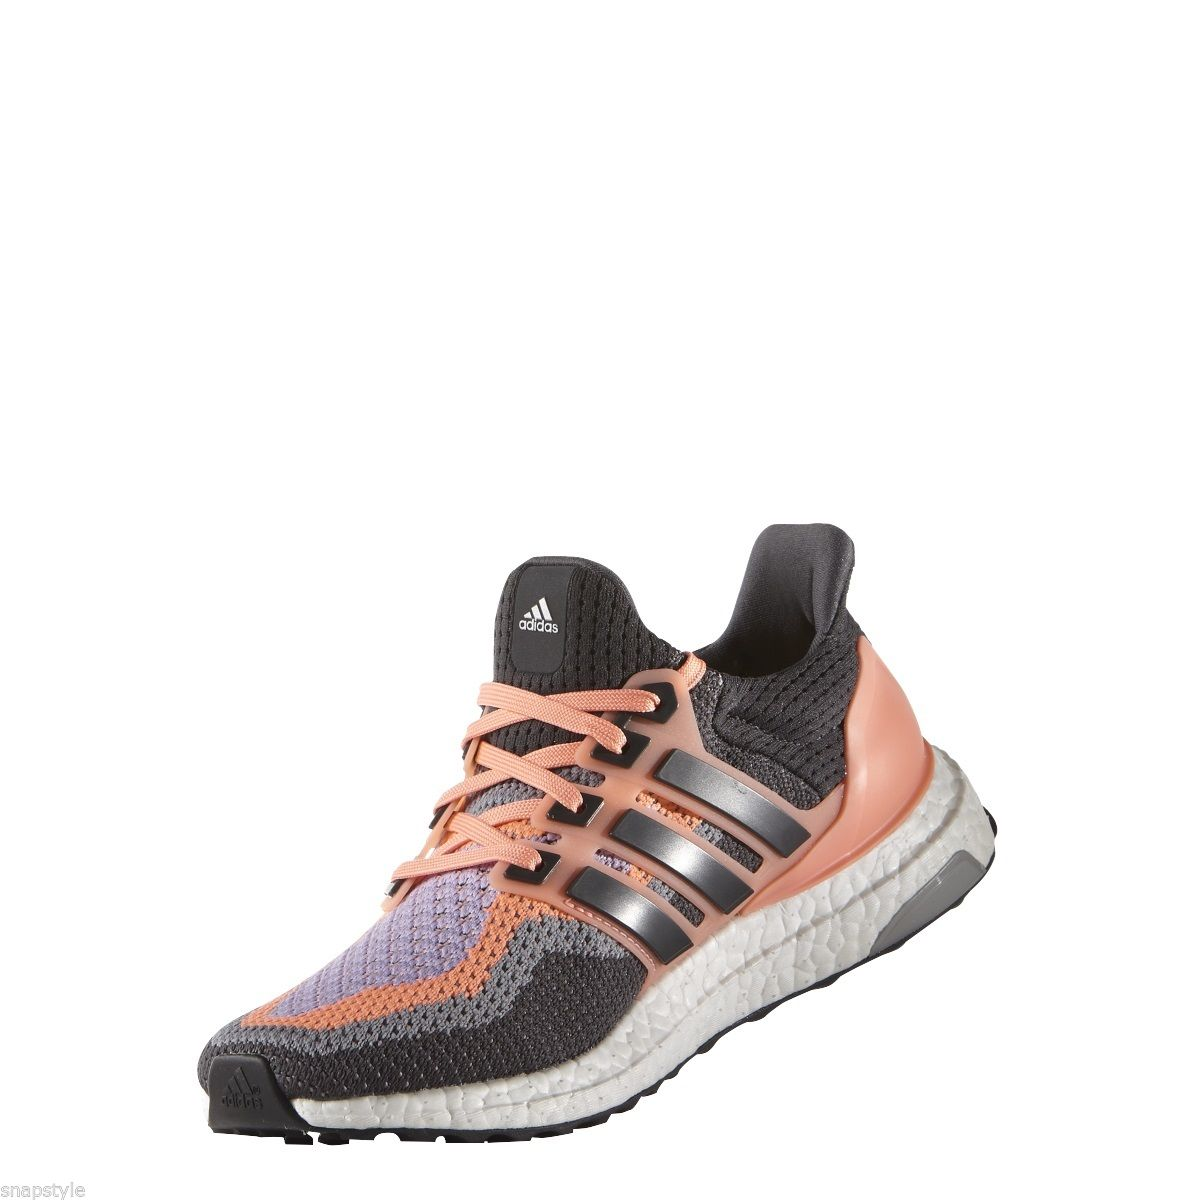 buy online fd3d5 984b0 New Women s ADIDAS Ultra Boost W AQ5166 Black Grey Pink Purple Running  Sneaker